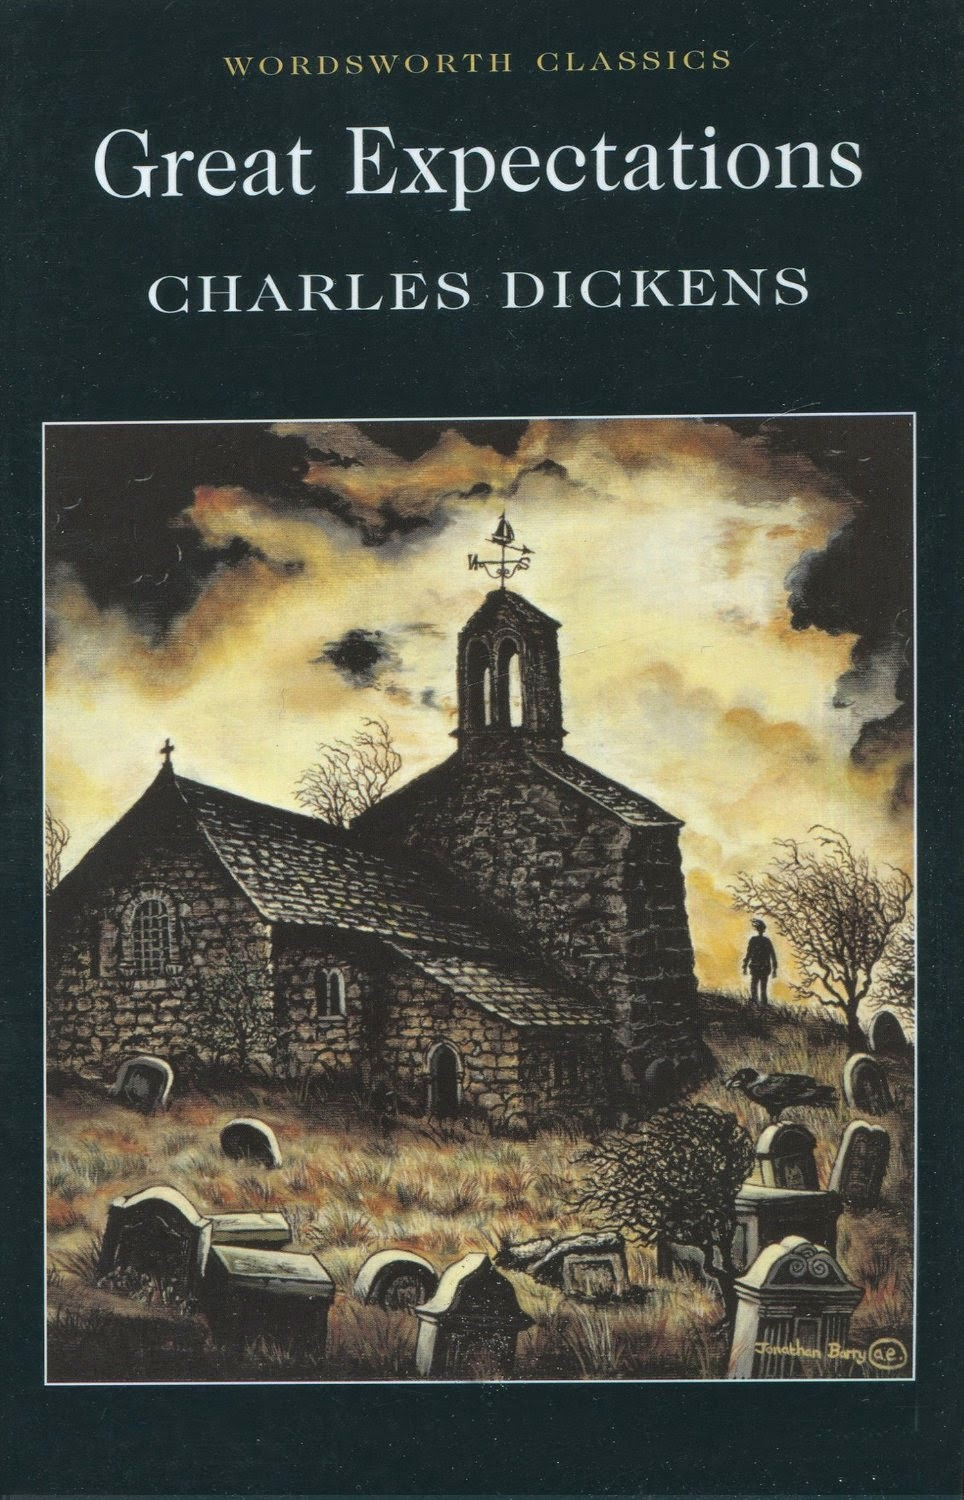 Great Expectations - Charles Dickens | Feedbooks